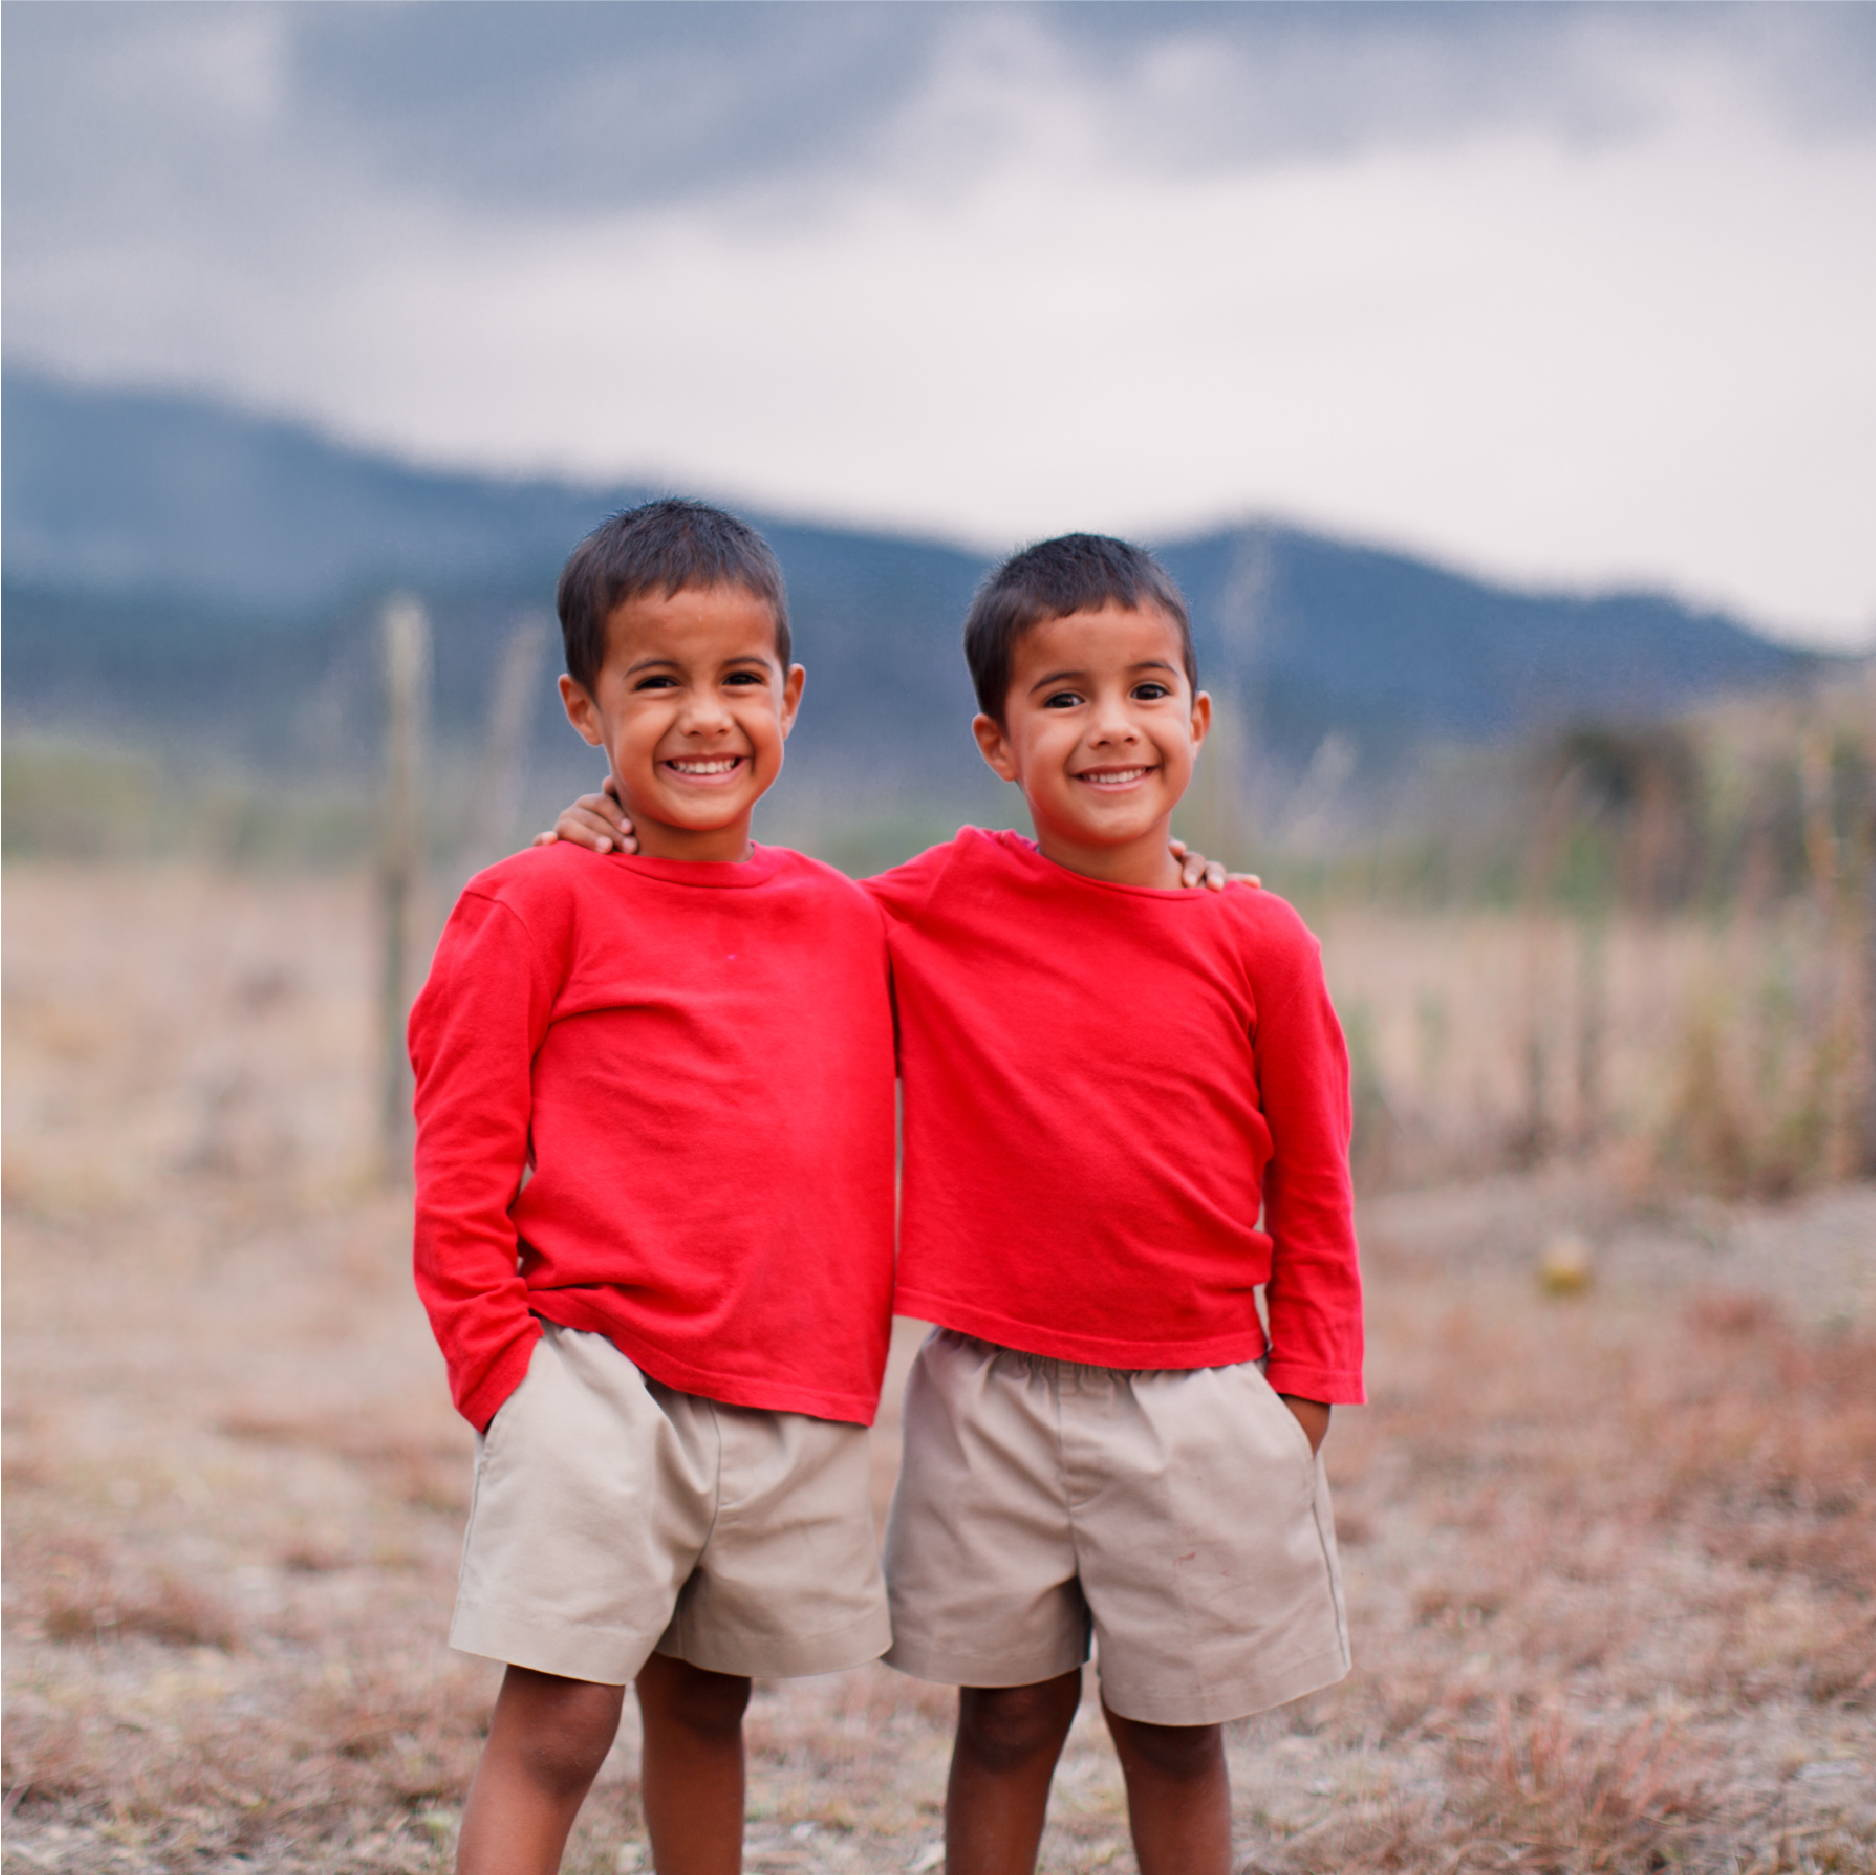 two young Honduran boys wear khaki shorts and red shirts as they stand and smile in front of a mountain range in Honduras.